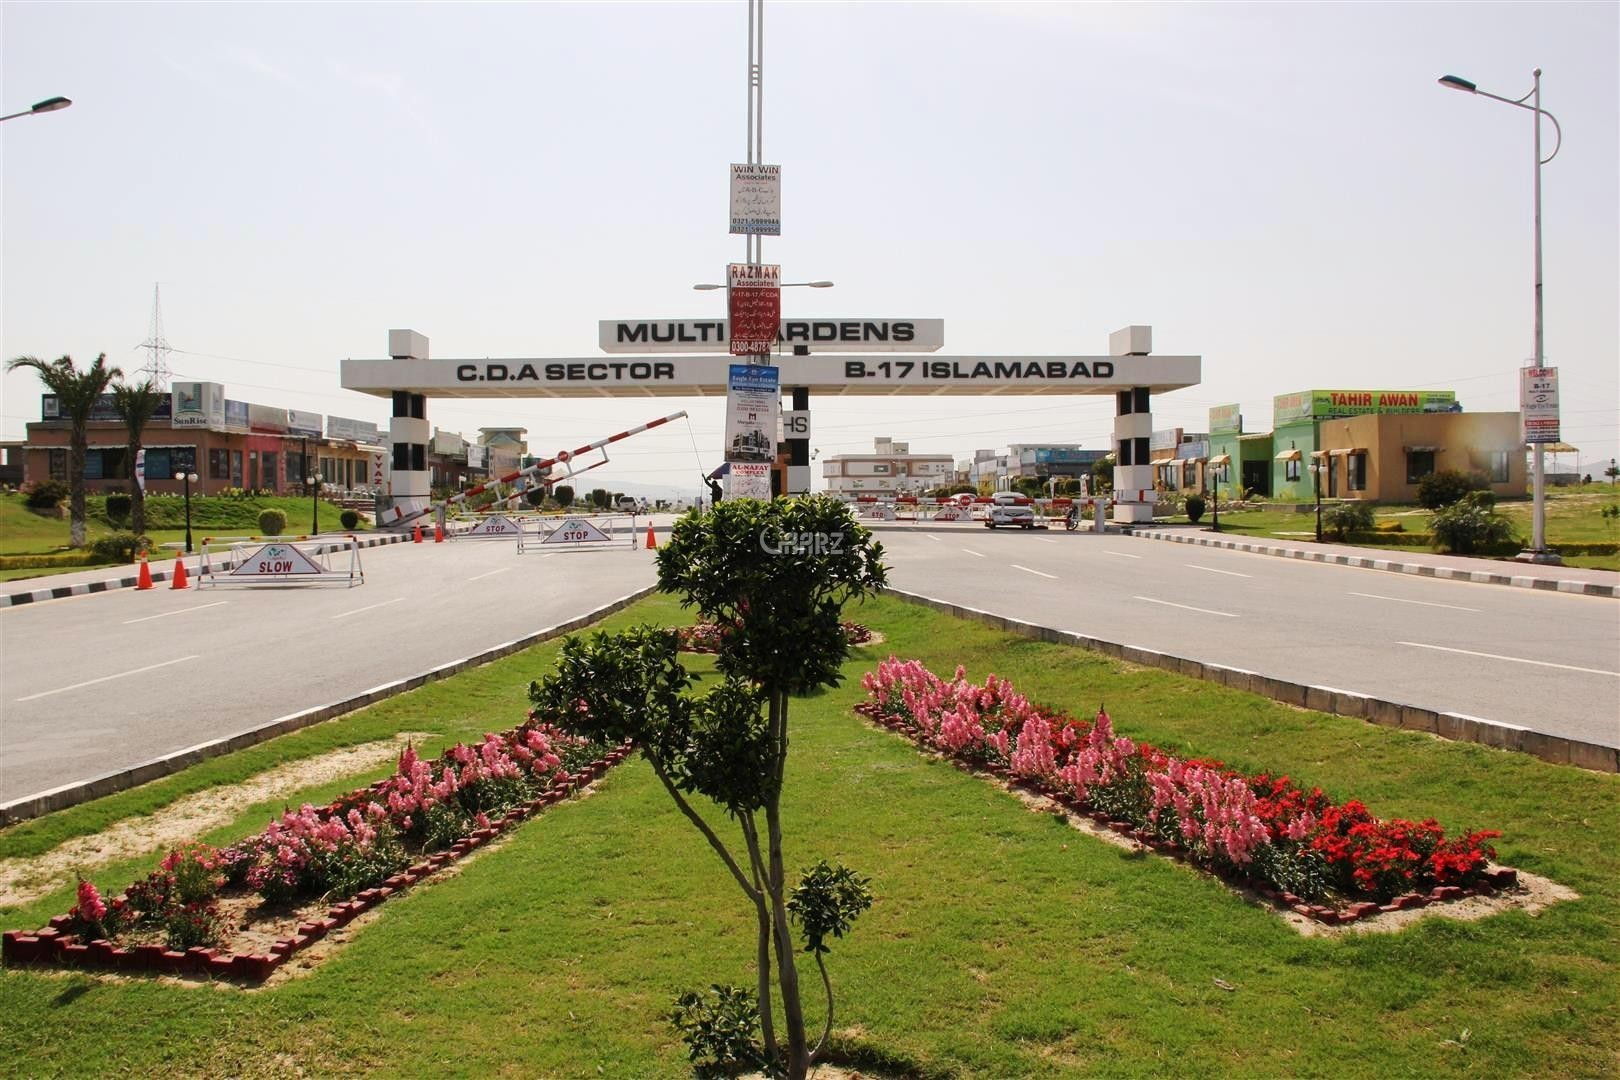 9 Marla Plot in B-17, Islamabad for Sale